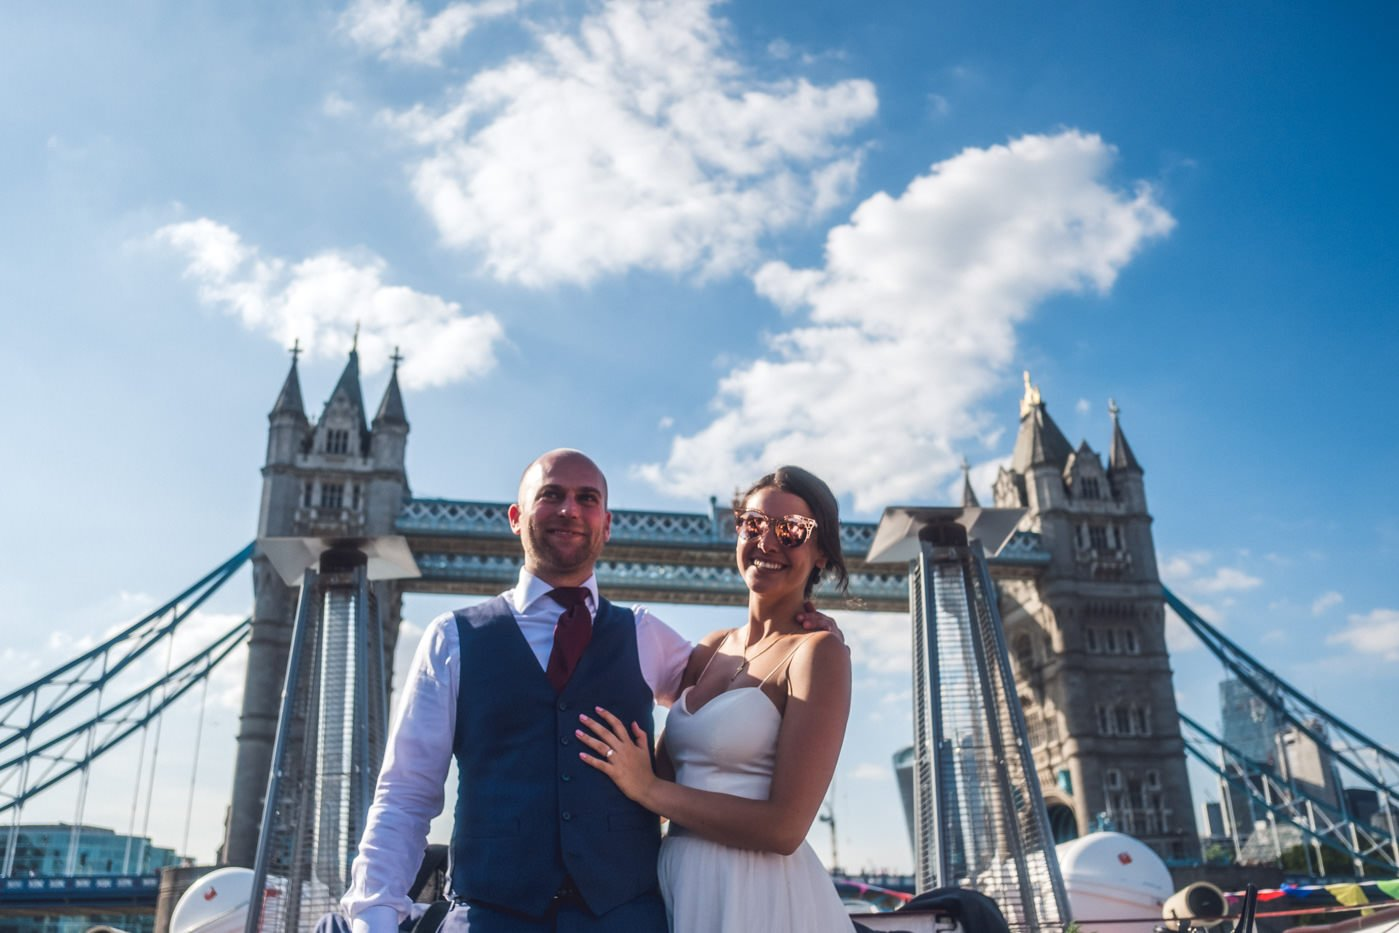 River thames portrait Warehouse wedding London